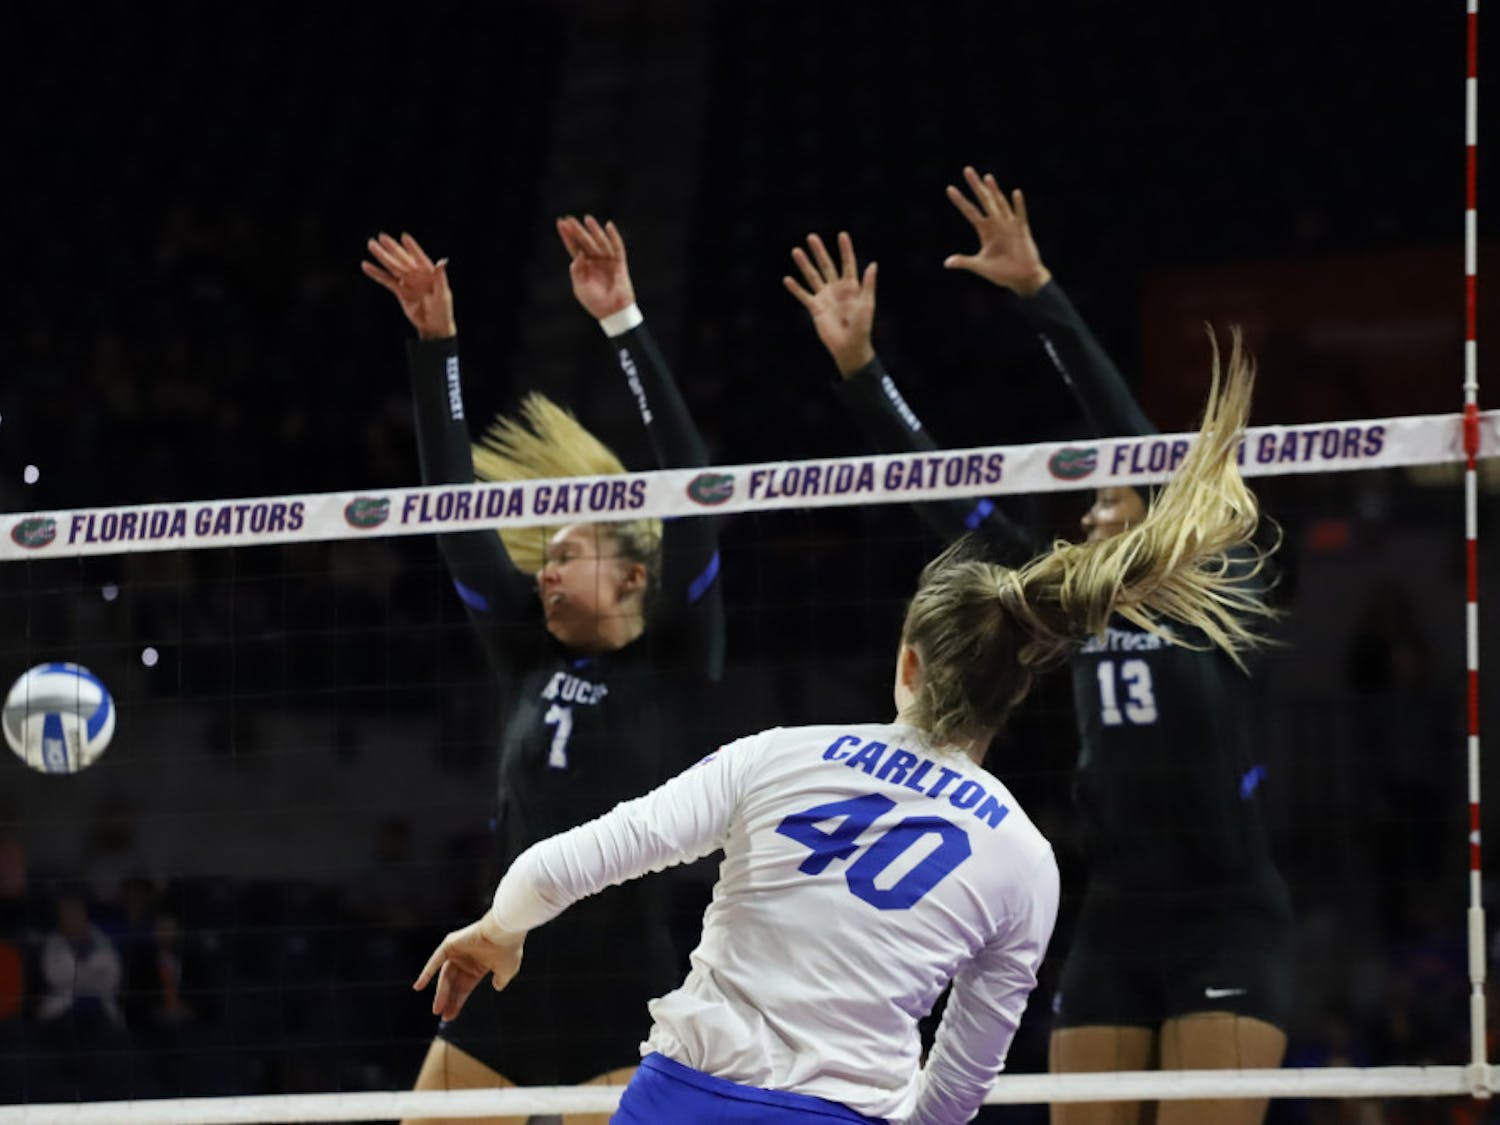 Holly Carlton at last year's home game versus Kentucky. Carlton had an impressive showing in South Carolina to help the Gators win their first match against a ranked opponent in 2020.